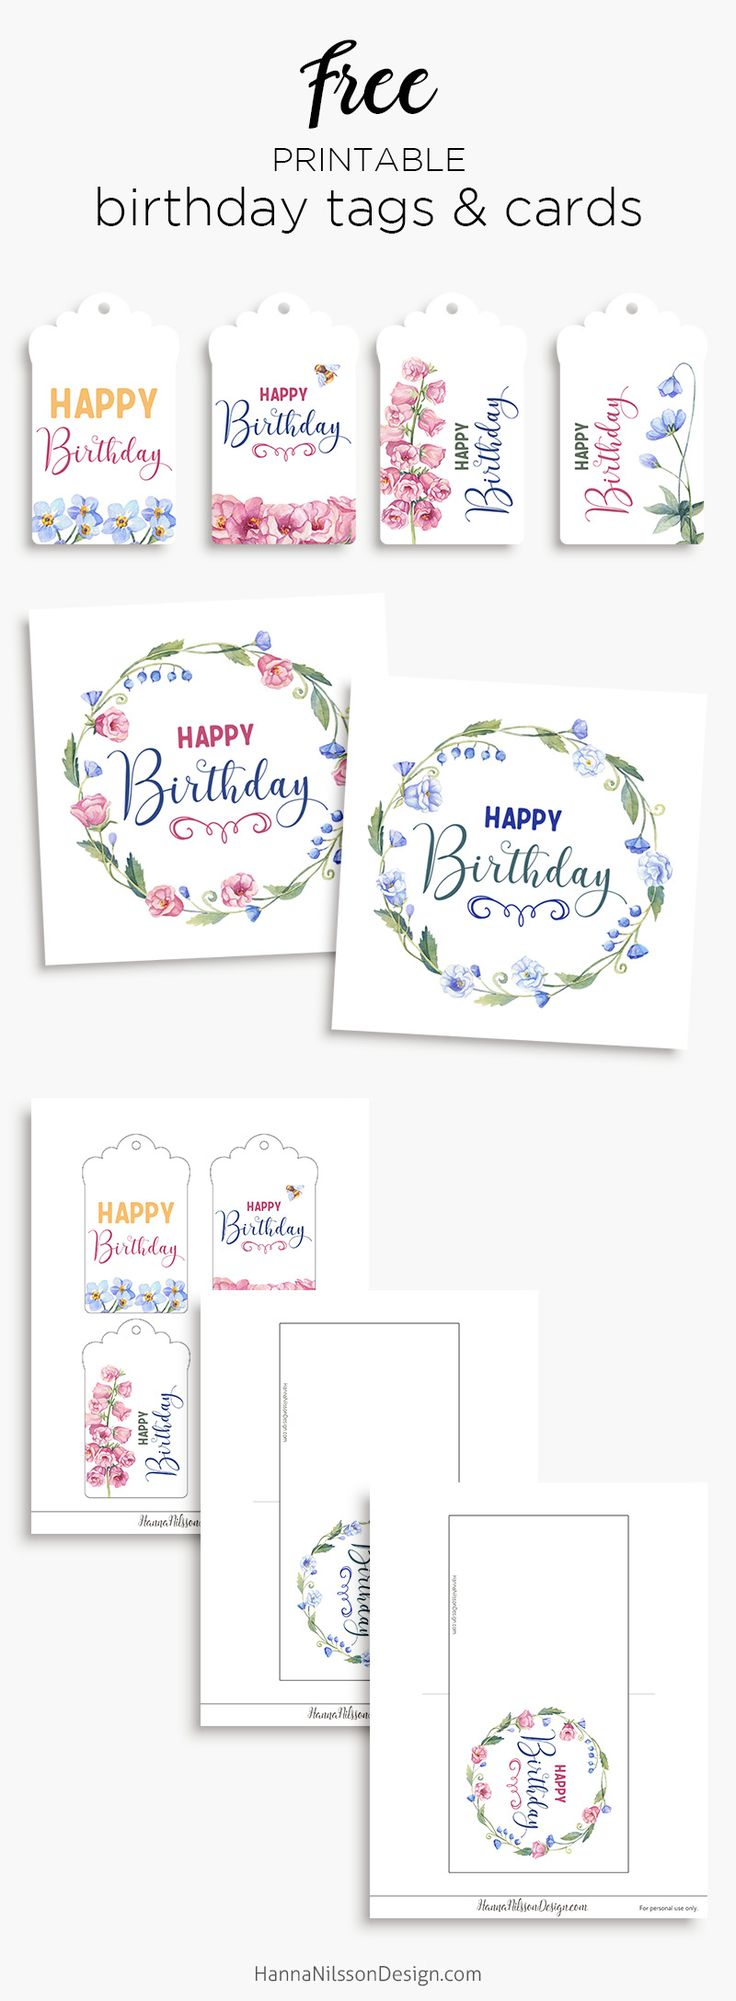 Birthday tags & cards   Free floral printables   #printables #birthday #birthdaycards #freeprintable